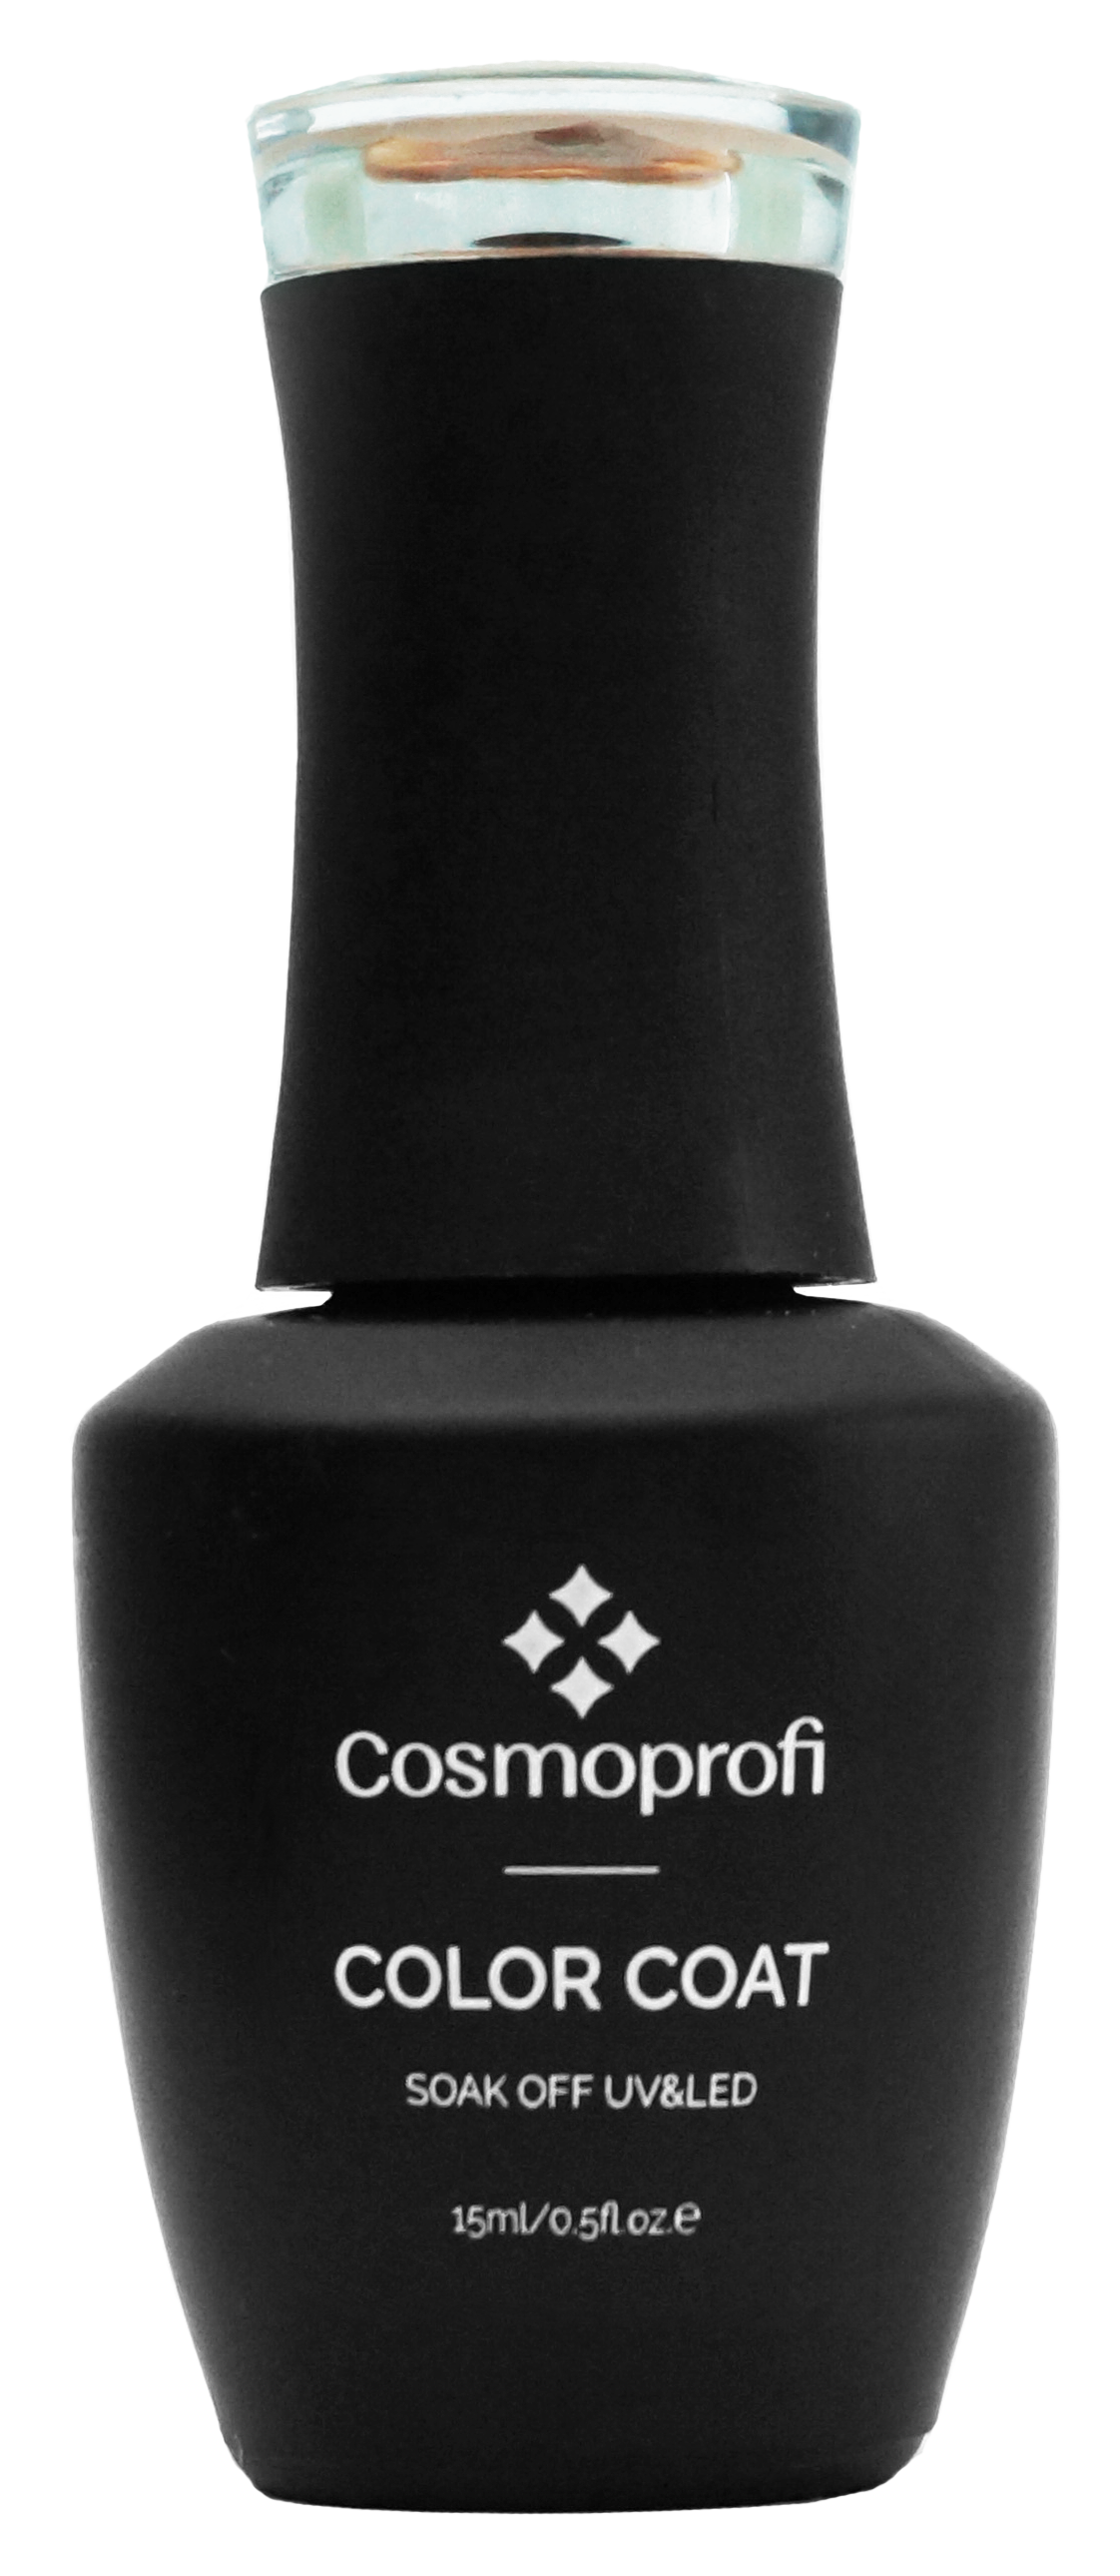 Гель-лак Cosmoprofi, Color coat № 182, 15 мл